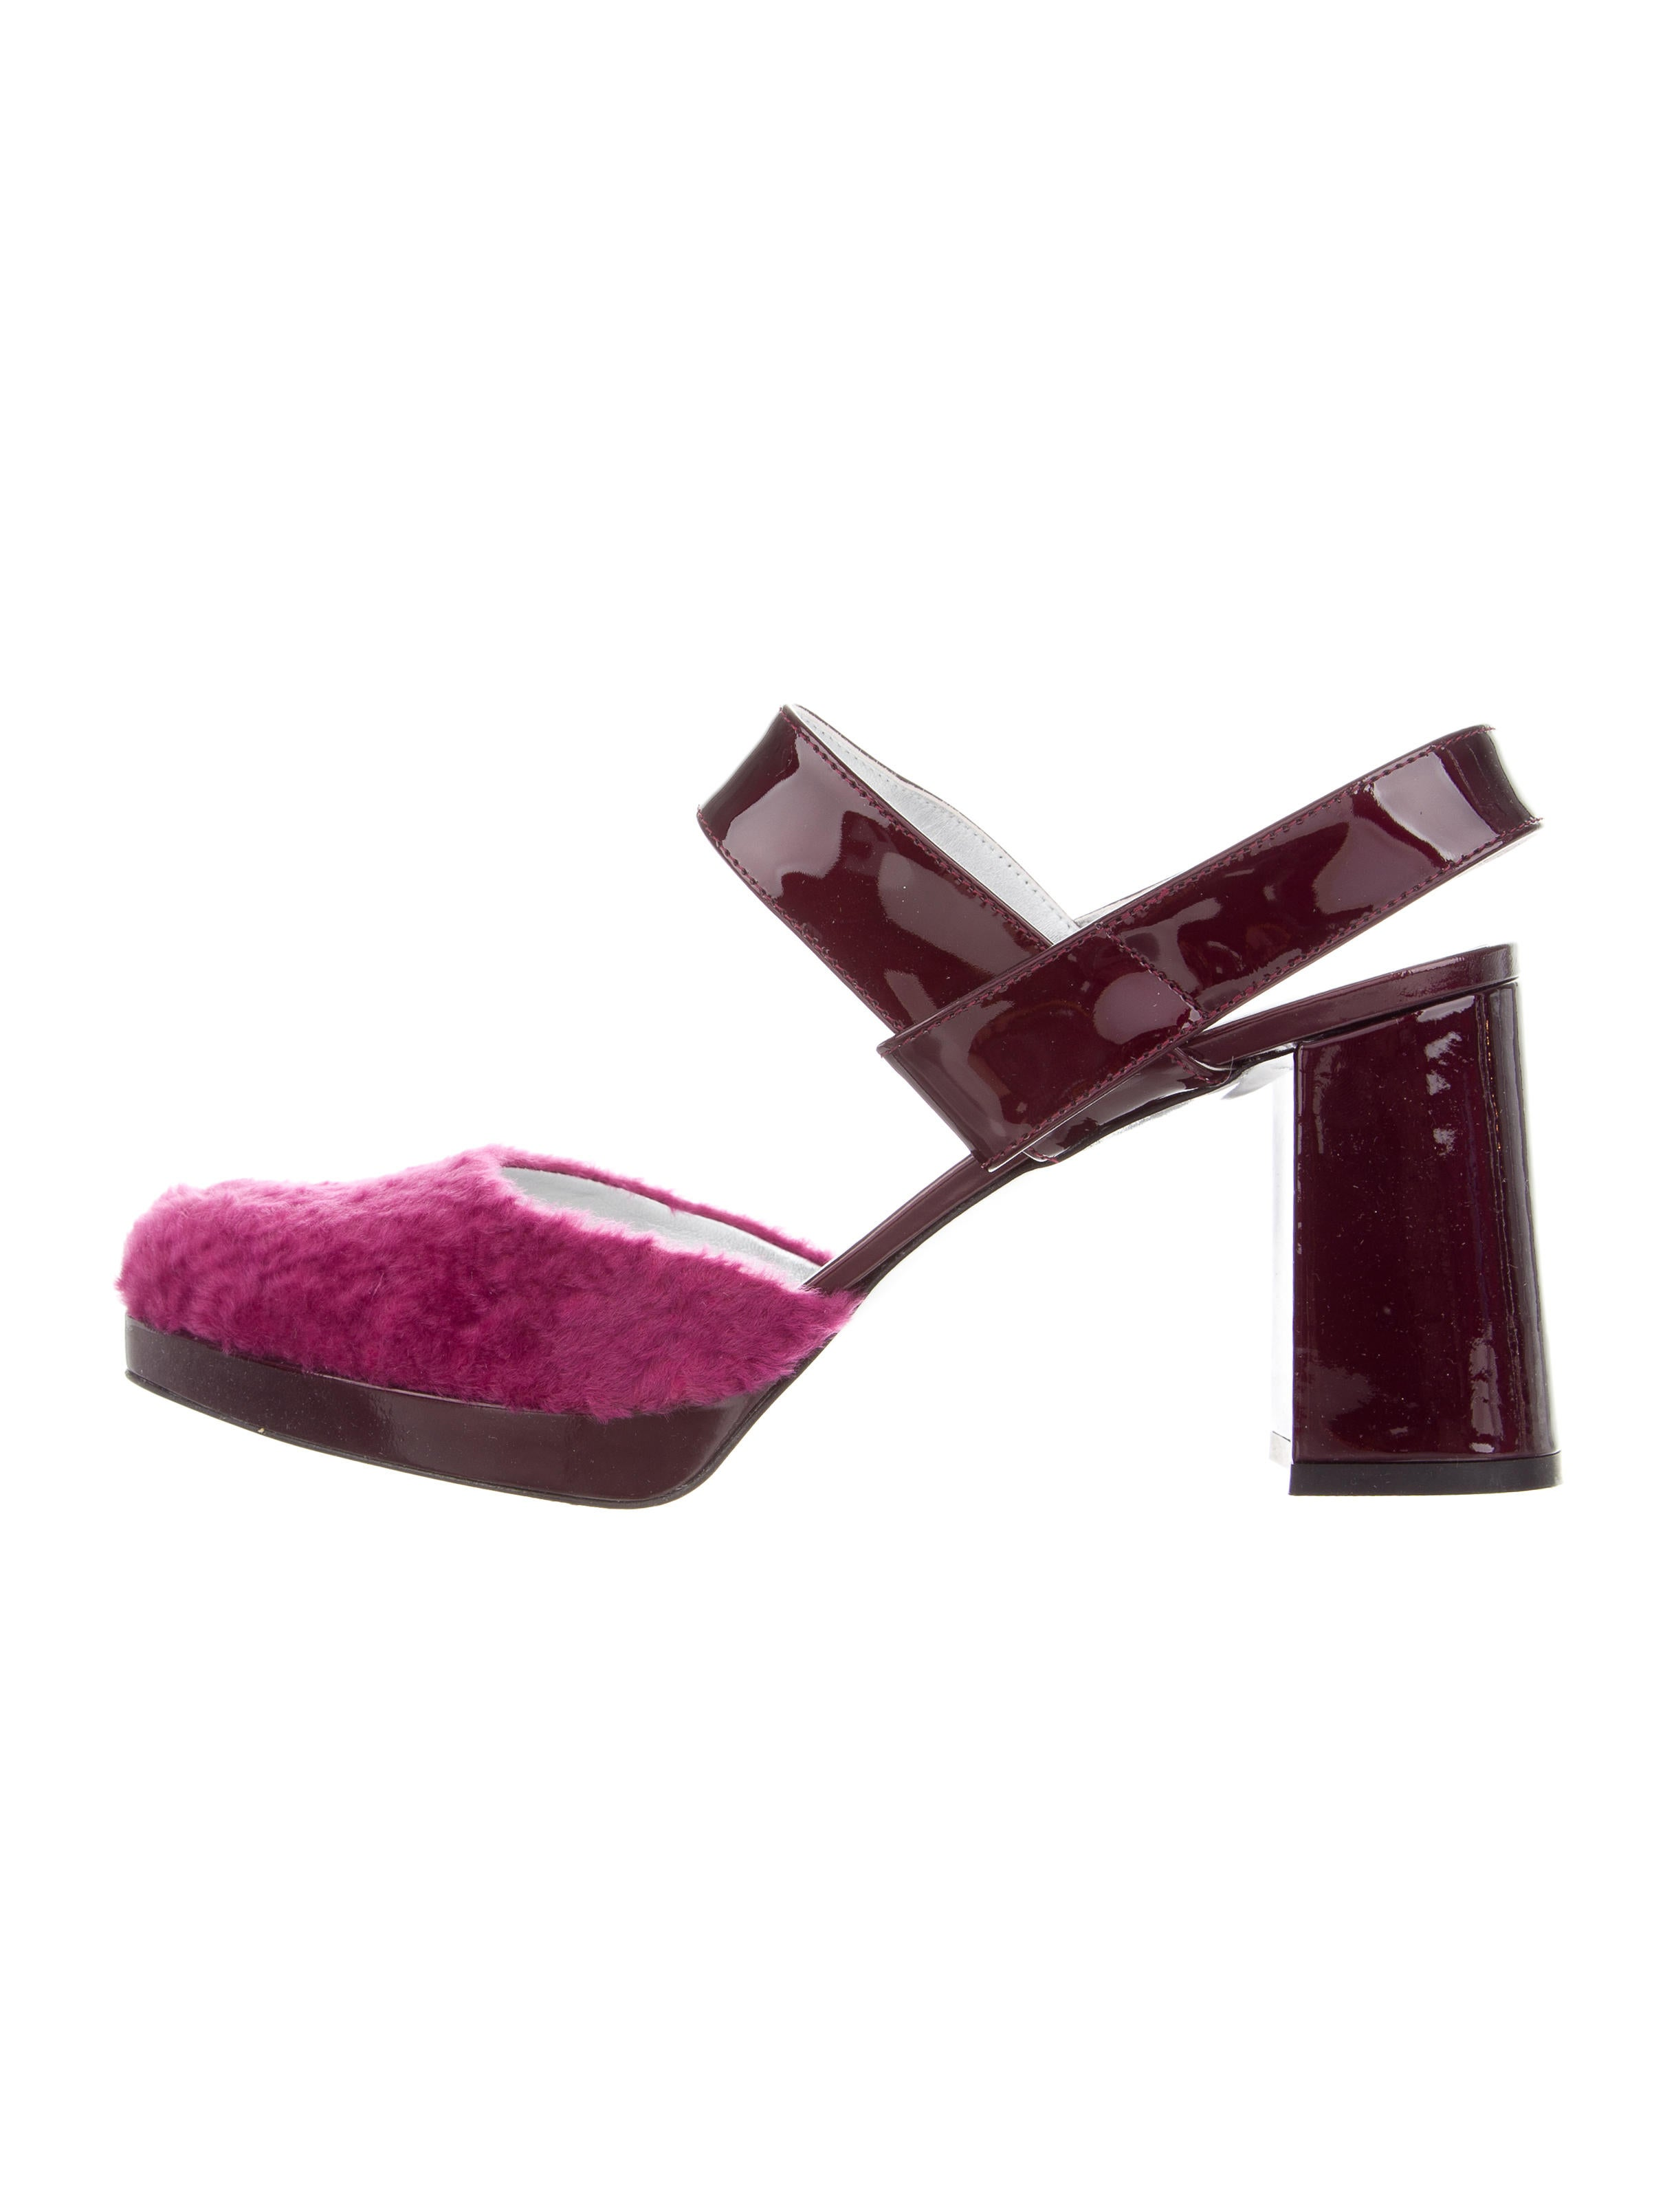 Amélie Pichard Shearling-Trimmed Slingback Pumps w/ Tags websites outlet really free shipping 100% guaranteed clearance get authentic countdown package cheap online QKHhAwp